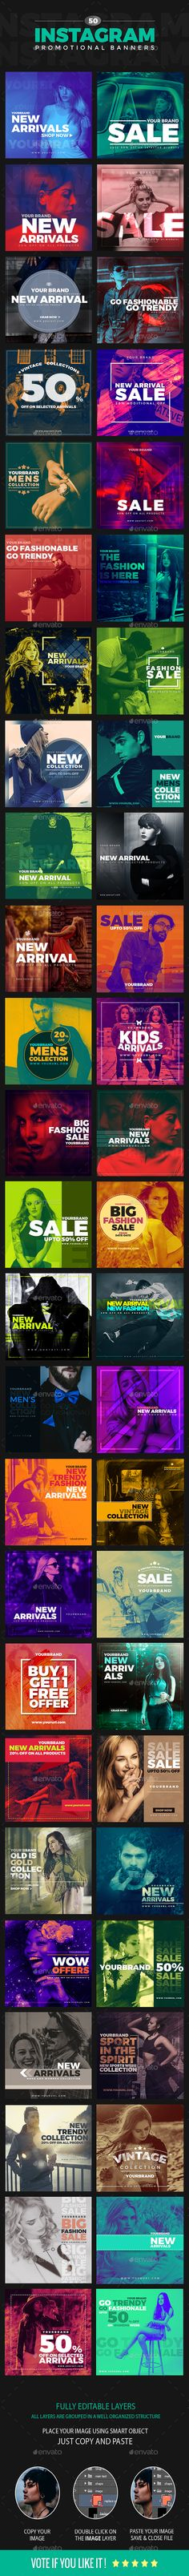 50 Duotone Instagram Banners — Photoshop PSD #hype #photographer • Download ➝ https://graphicriver.net/item/50-duotone-instagram-banners/20352765?ref=pxcr